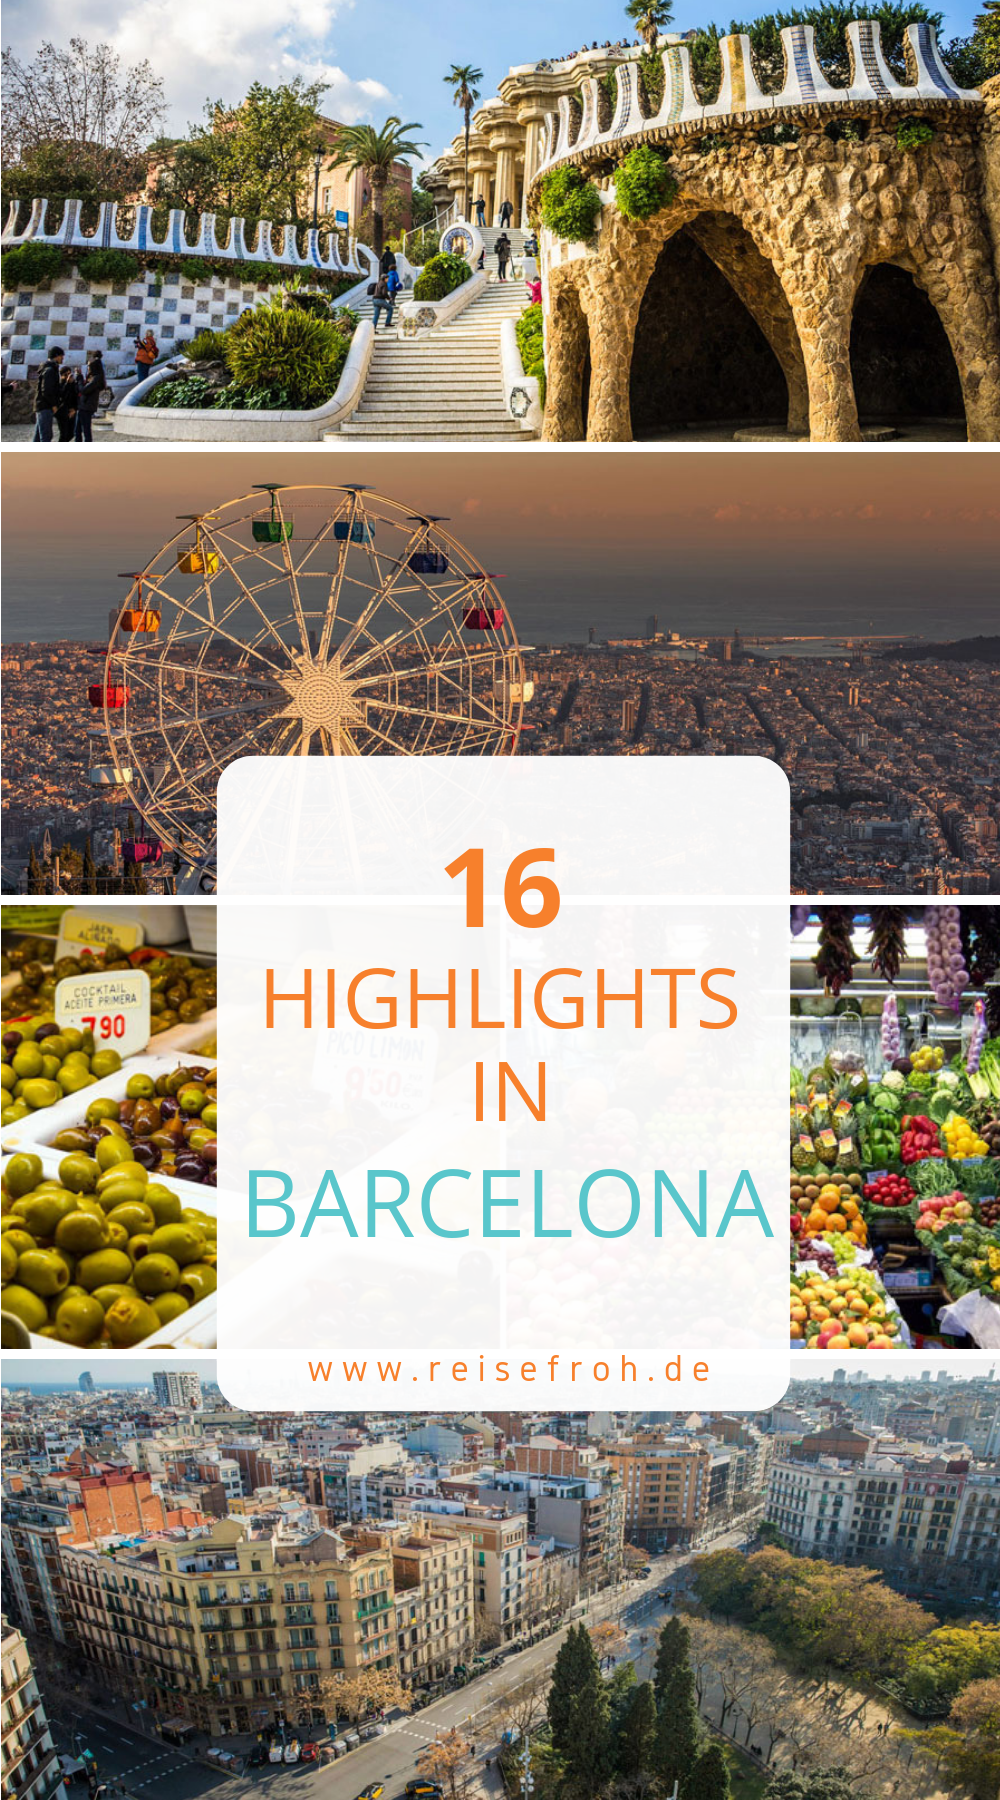 Barcelona Sehenswürdigkeiten: Top 16 Lieblingsorte & Highlights #favoriteplaces